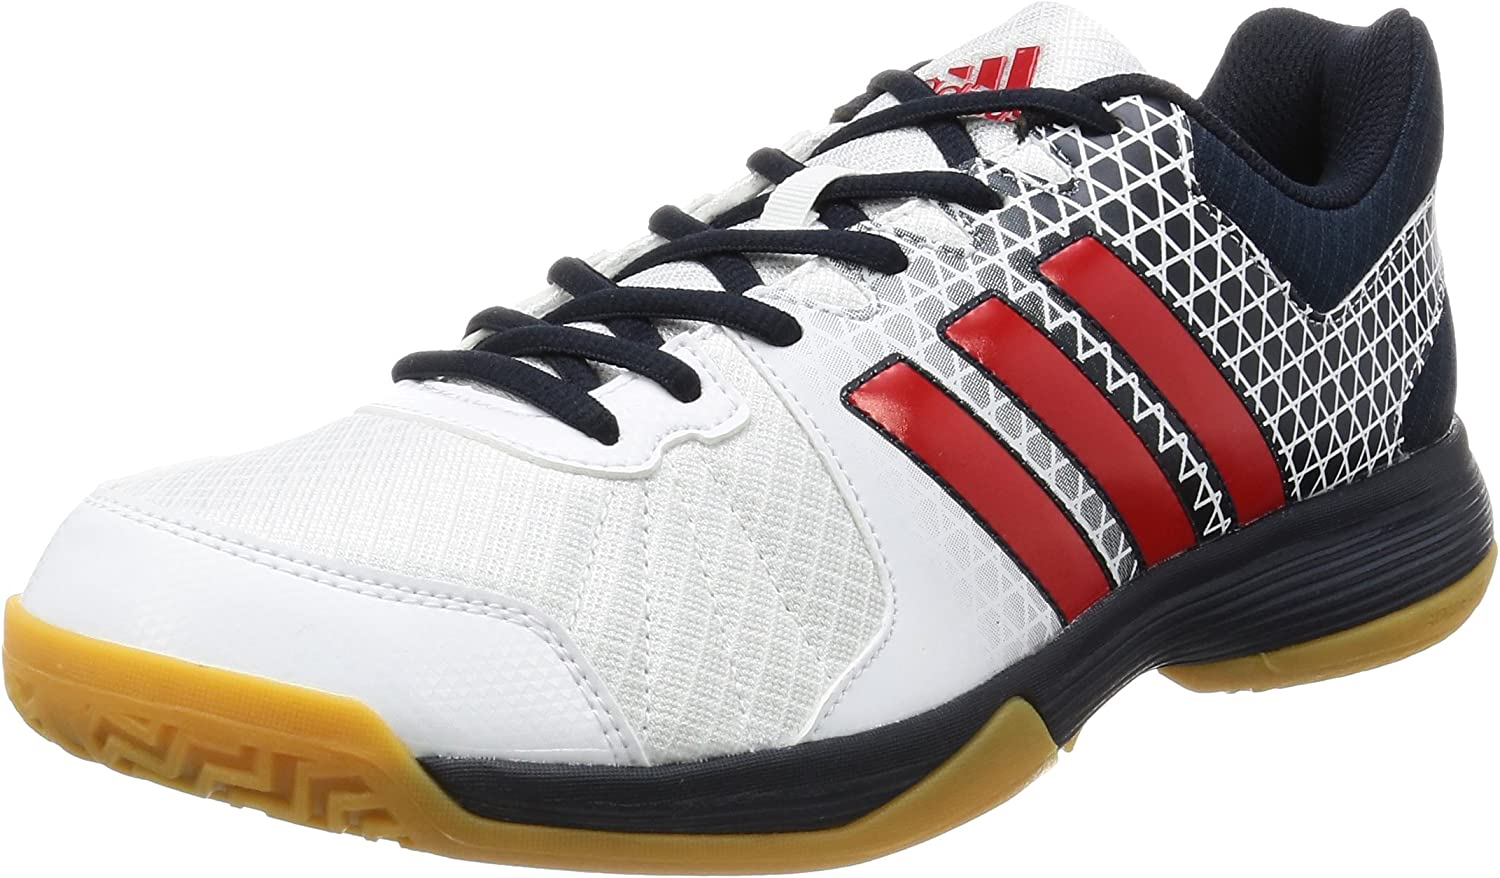 Adidas Men S Volleyball Ligra 4 Shoes Ftwr White Vivid Red S13 Night Navy 4 Eu Amazon Co Uk Sports Outdoors